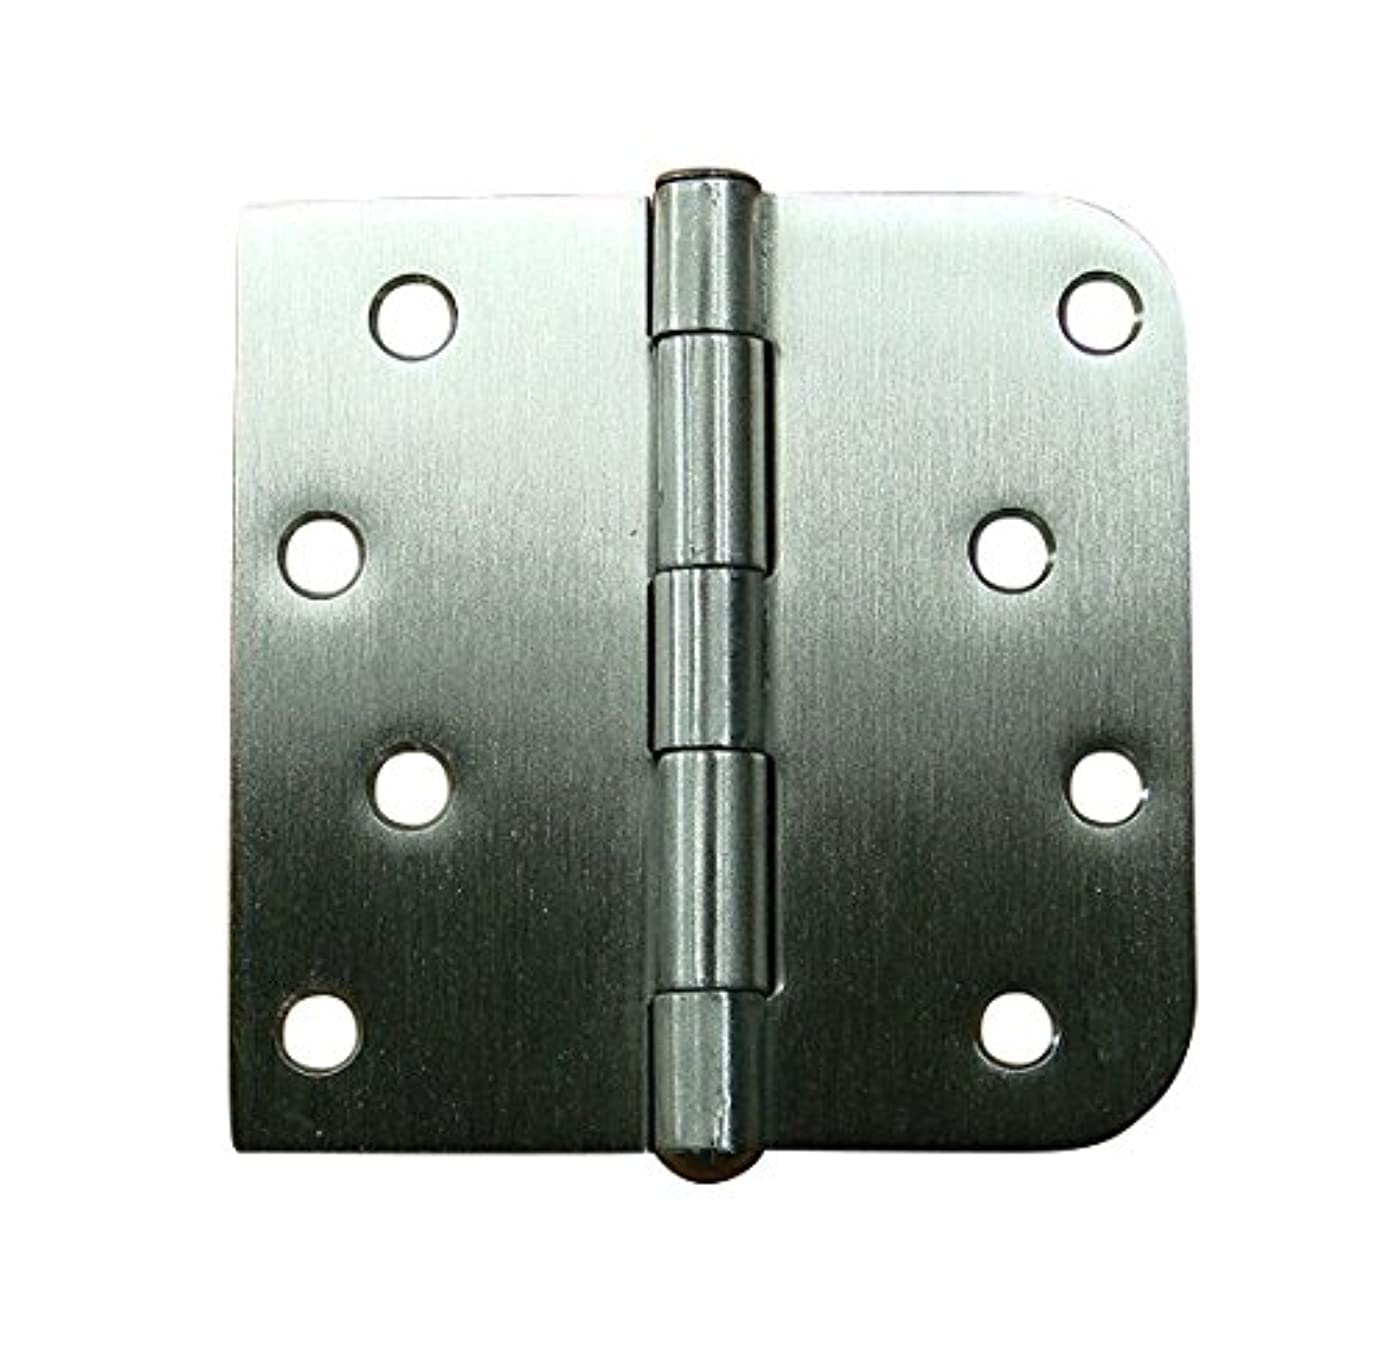 Stainless Steel Hinge - 4